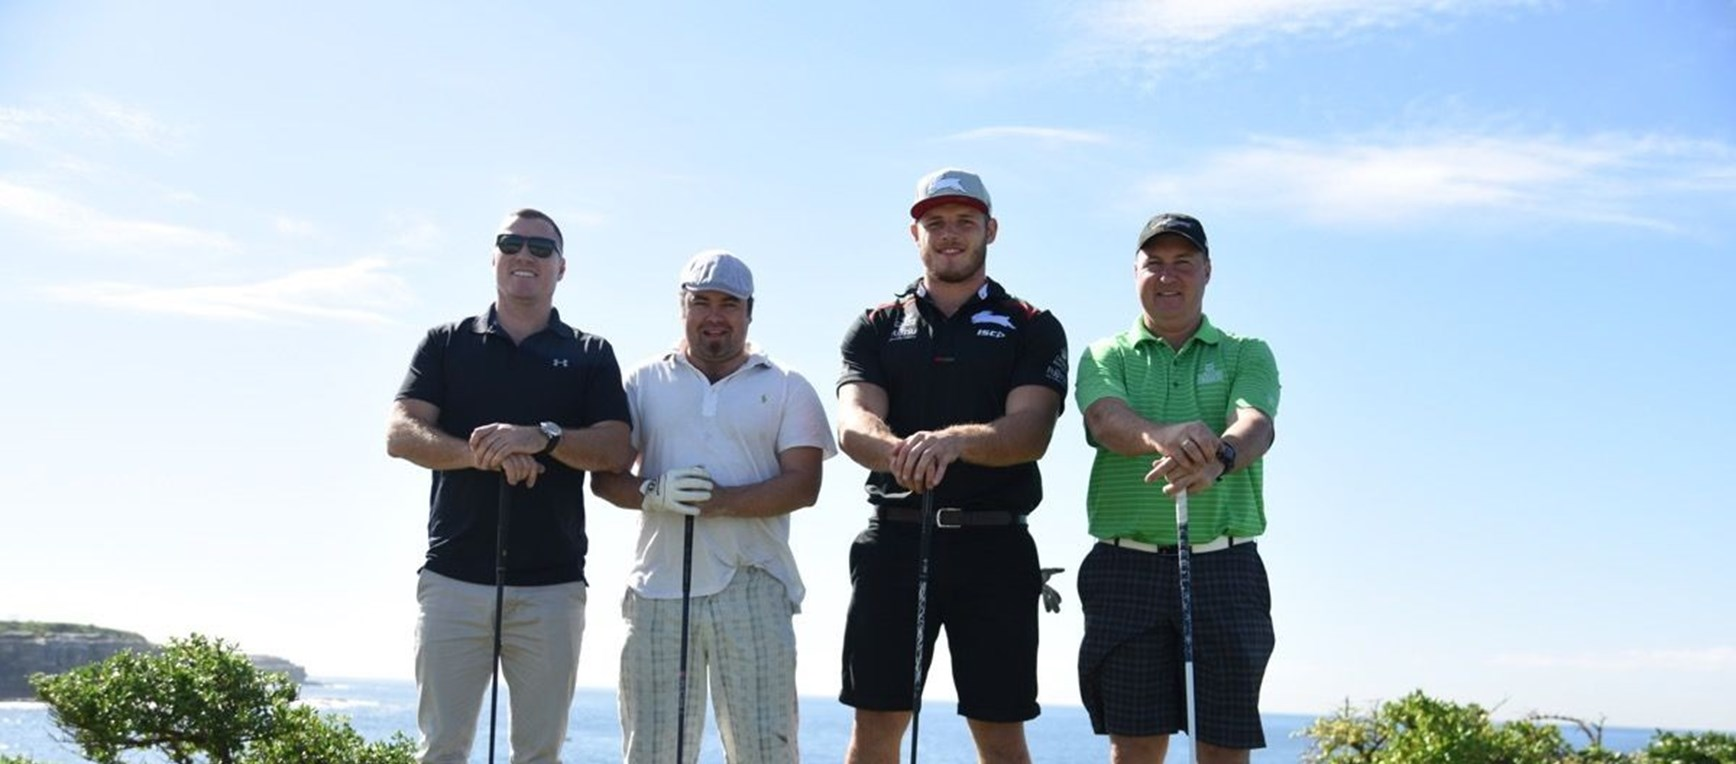 GALLERY: 2016 Golf Day